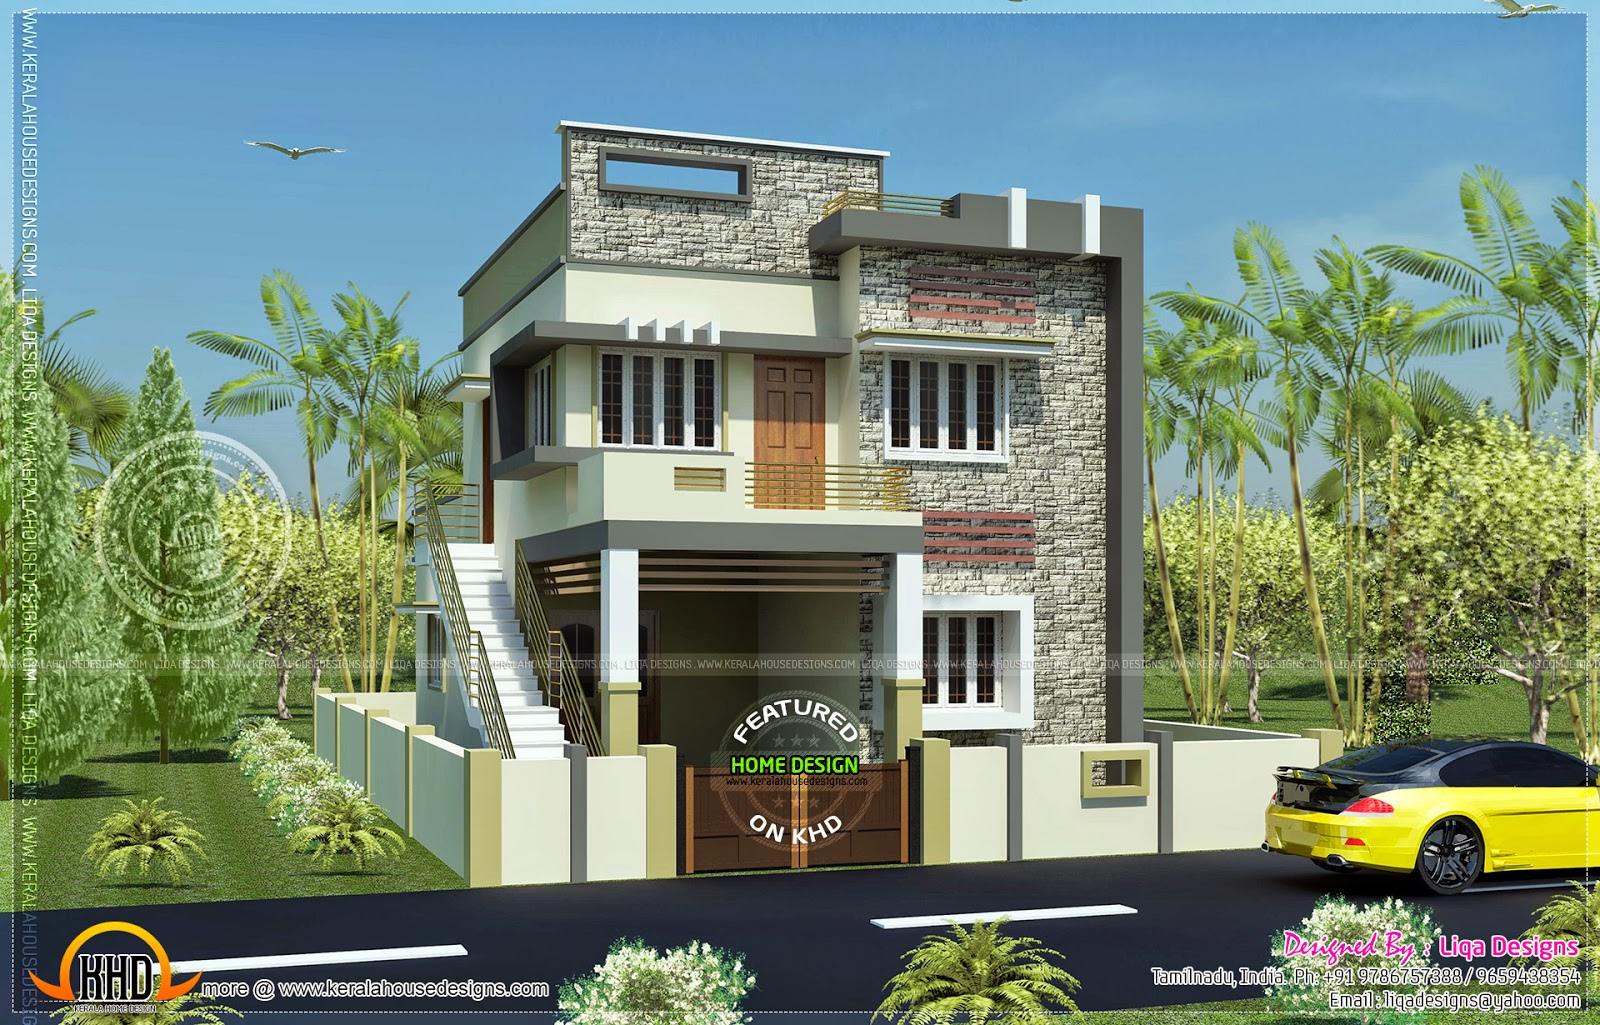 Modular Home With Wrap Around Porch in addition Beautiful Indian House Design moreover Horror Haunted House also Park Model Homes Floor Plans as well Affordable 4 Bedroom House Plans. on flat roof modern house plans one story